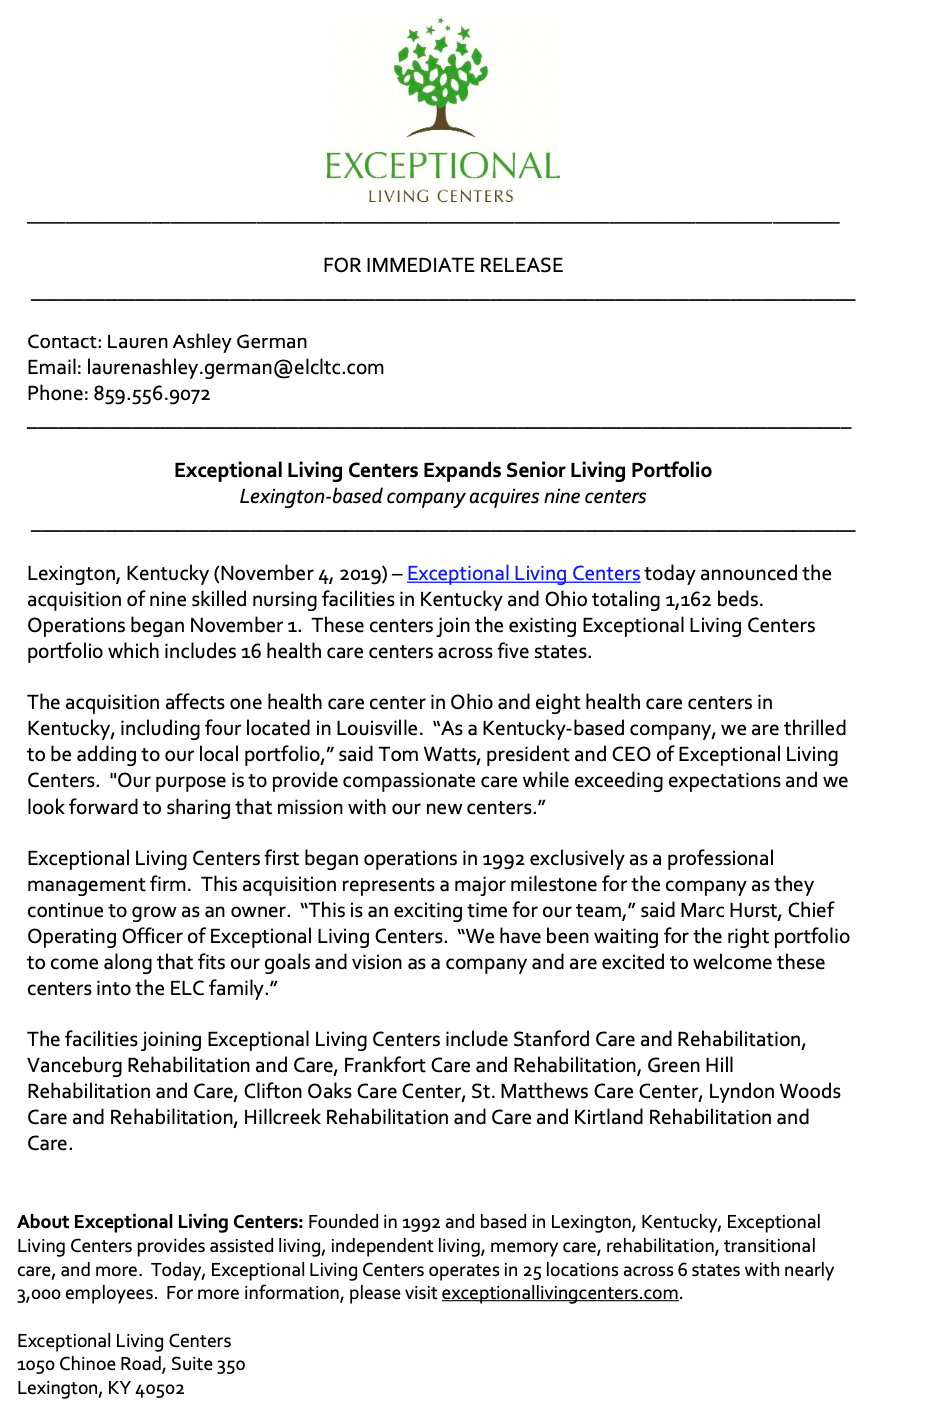 Exceptional Living Centers Expands Senior Living Portfolio, Senior Living in Kentucky, Kentucky Senior Living Association, Exceptional Living Centers